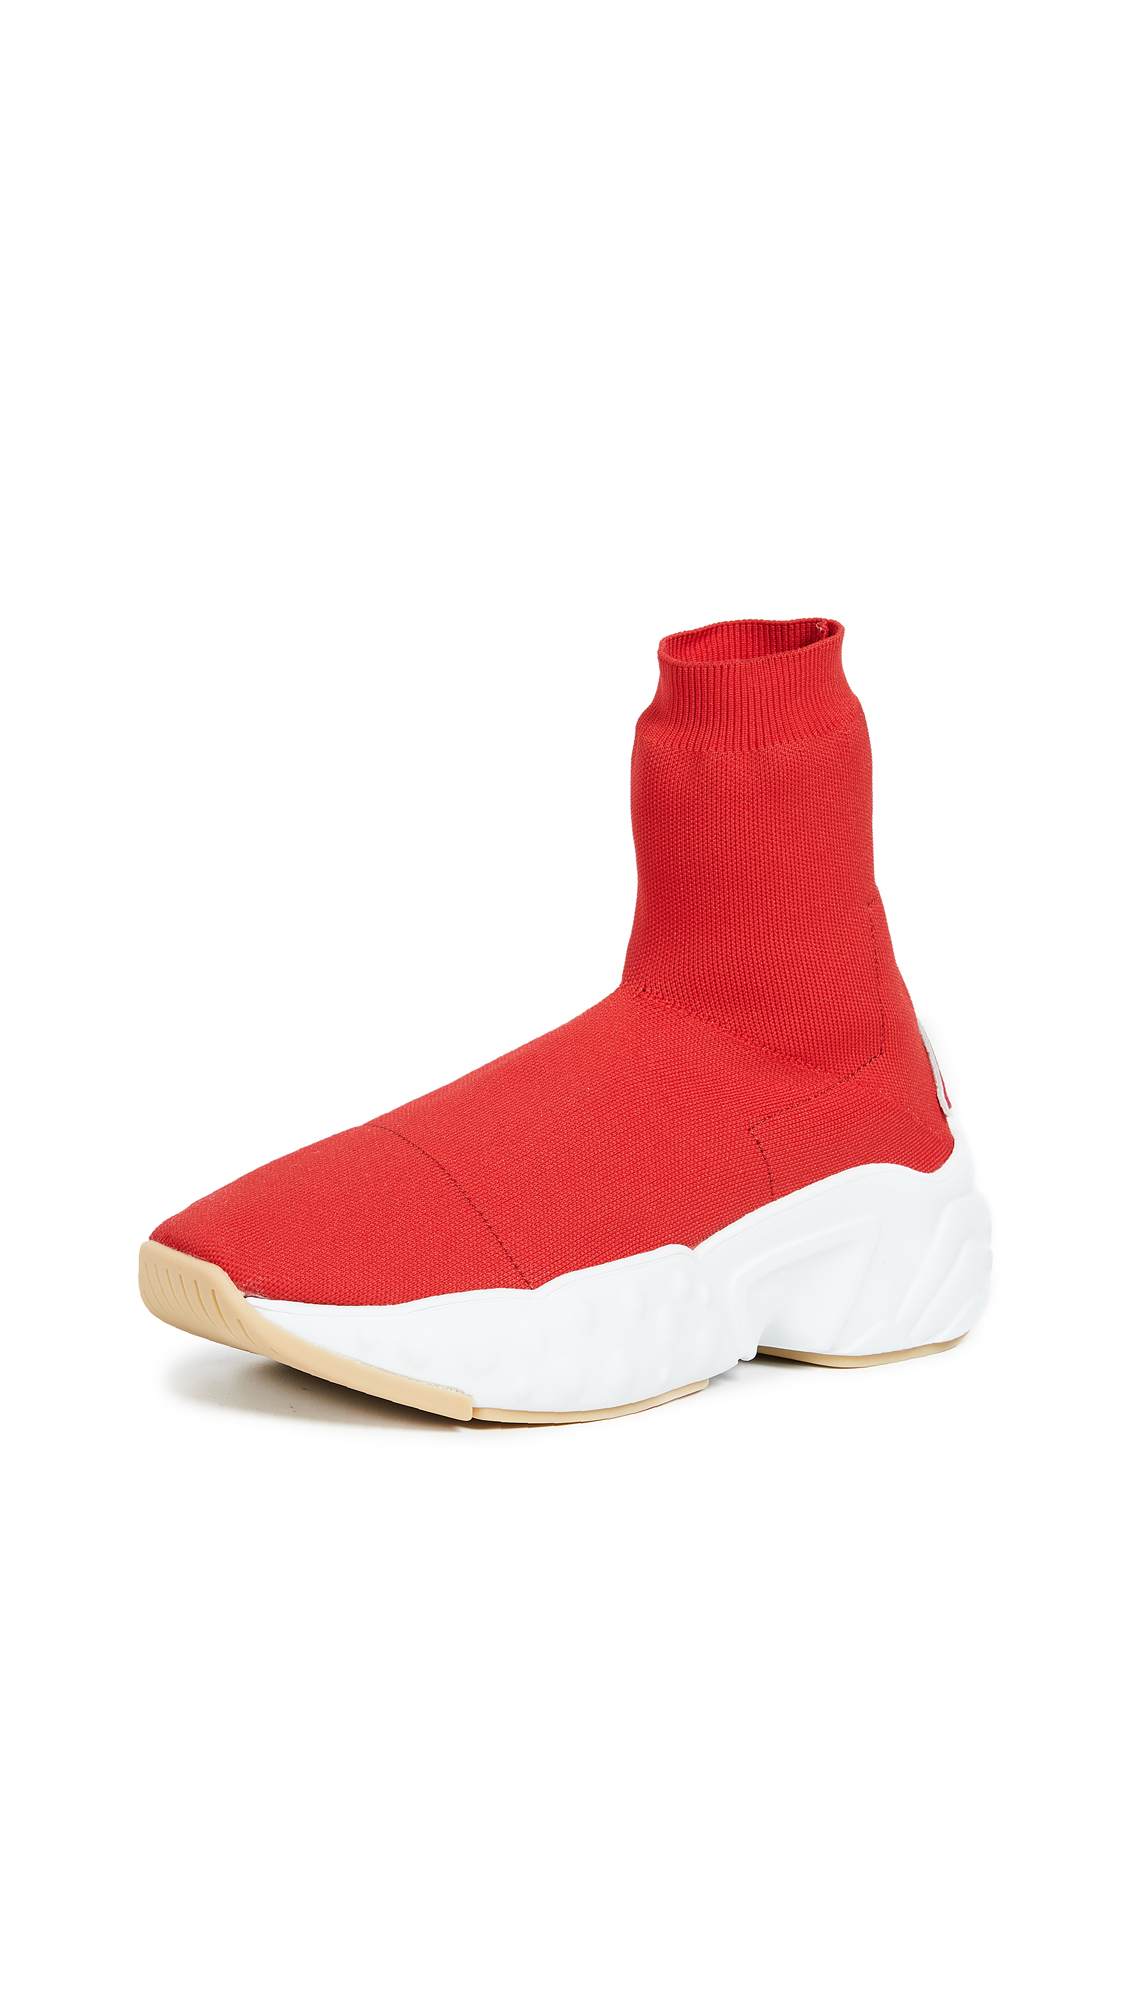 Acne Studios Tall Sock Sneakers - Red/Red